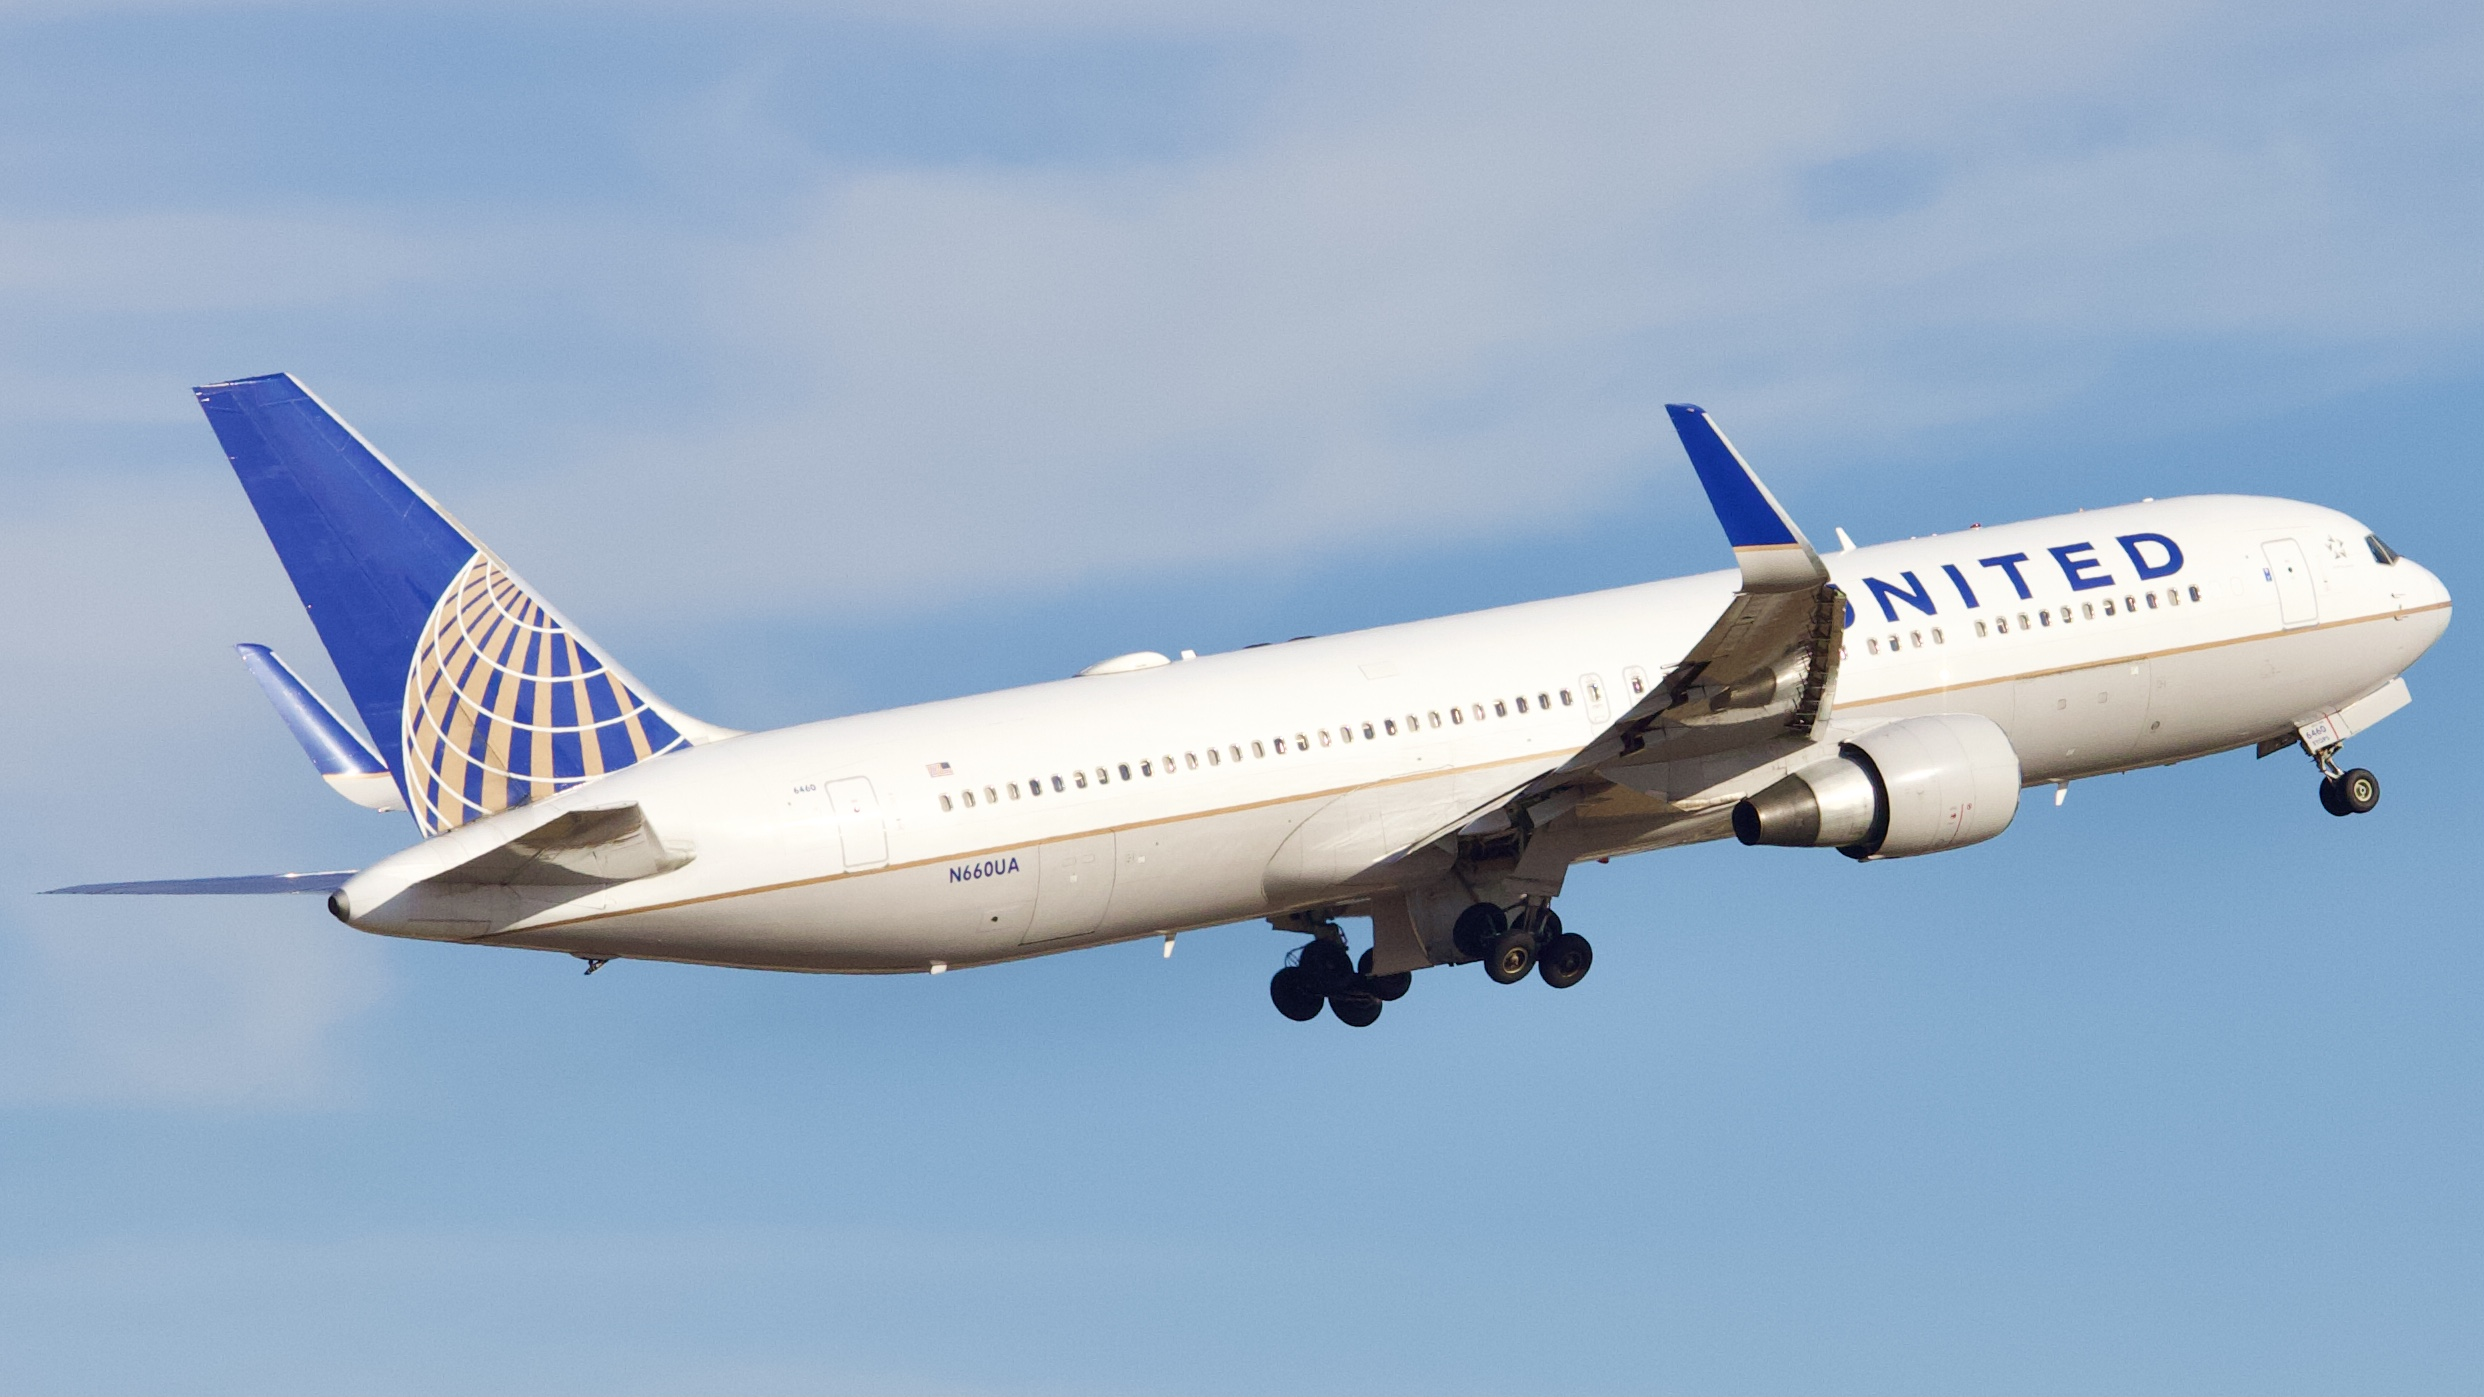 Photo of N660UA - United Airlines Boeing 767-300ER at IAH